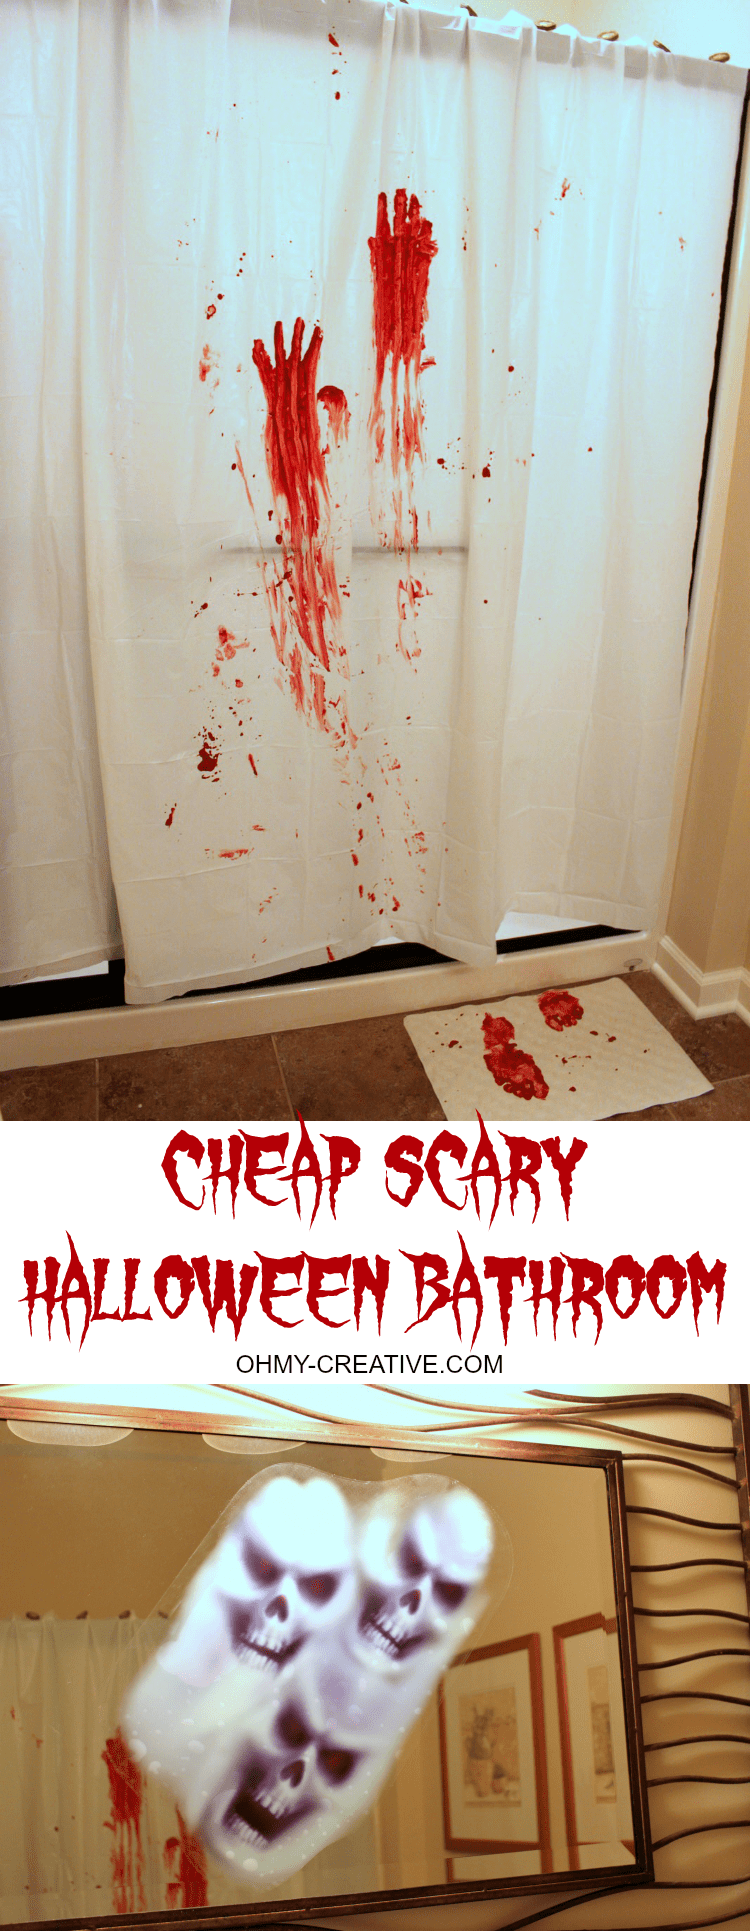 All it takes to make this Cheap and Scary Halloween Party Bathroom Decor is a trip to the dollar store for a few supplies and your guest will be in for a frightful surprise! | OHMY-CREATIVE .COM